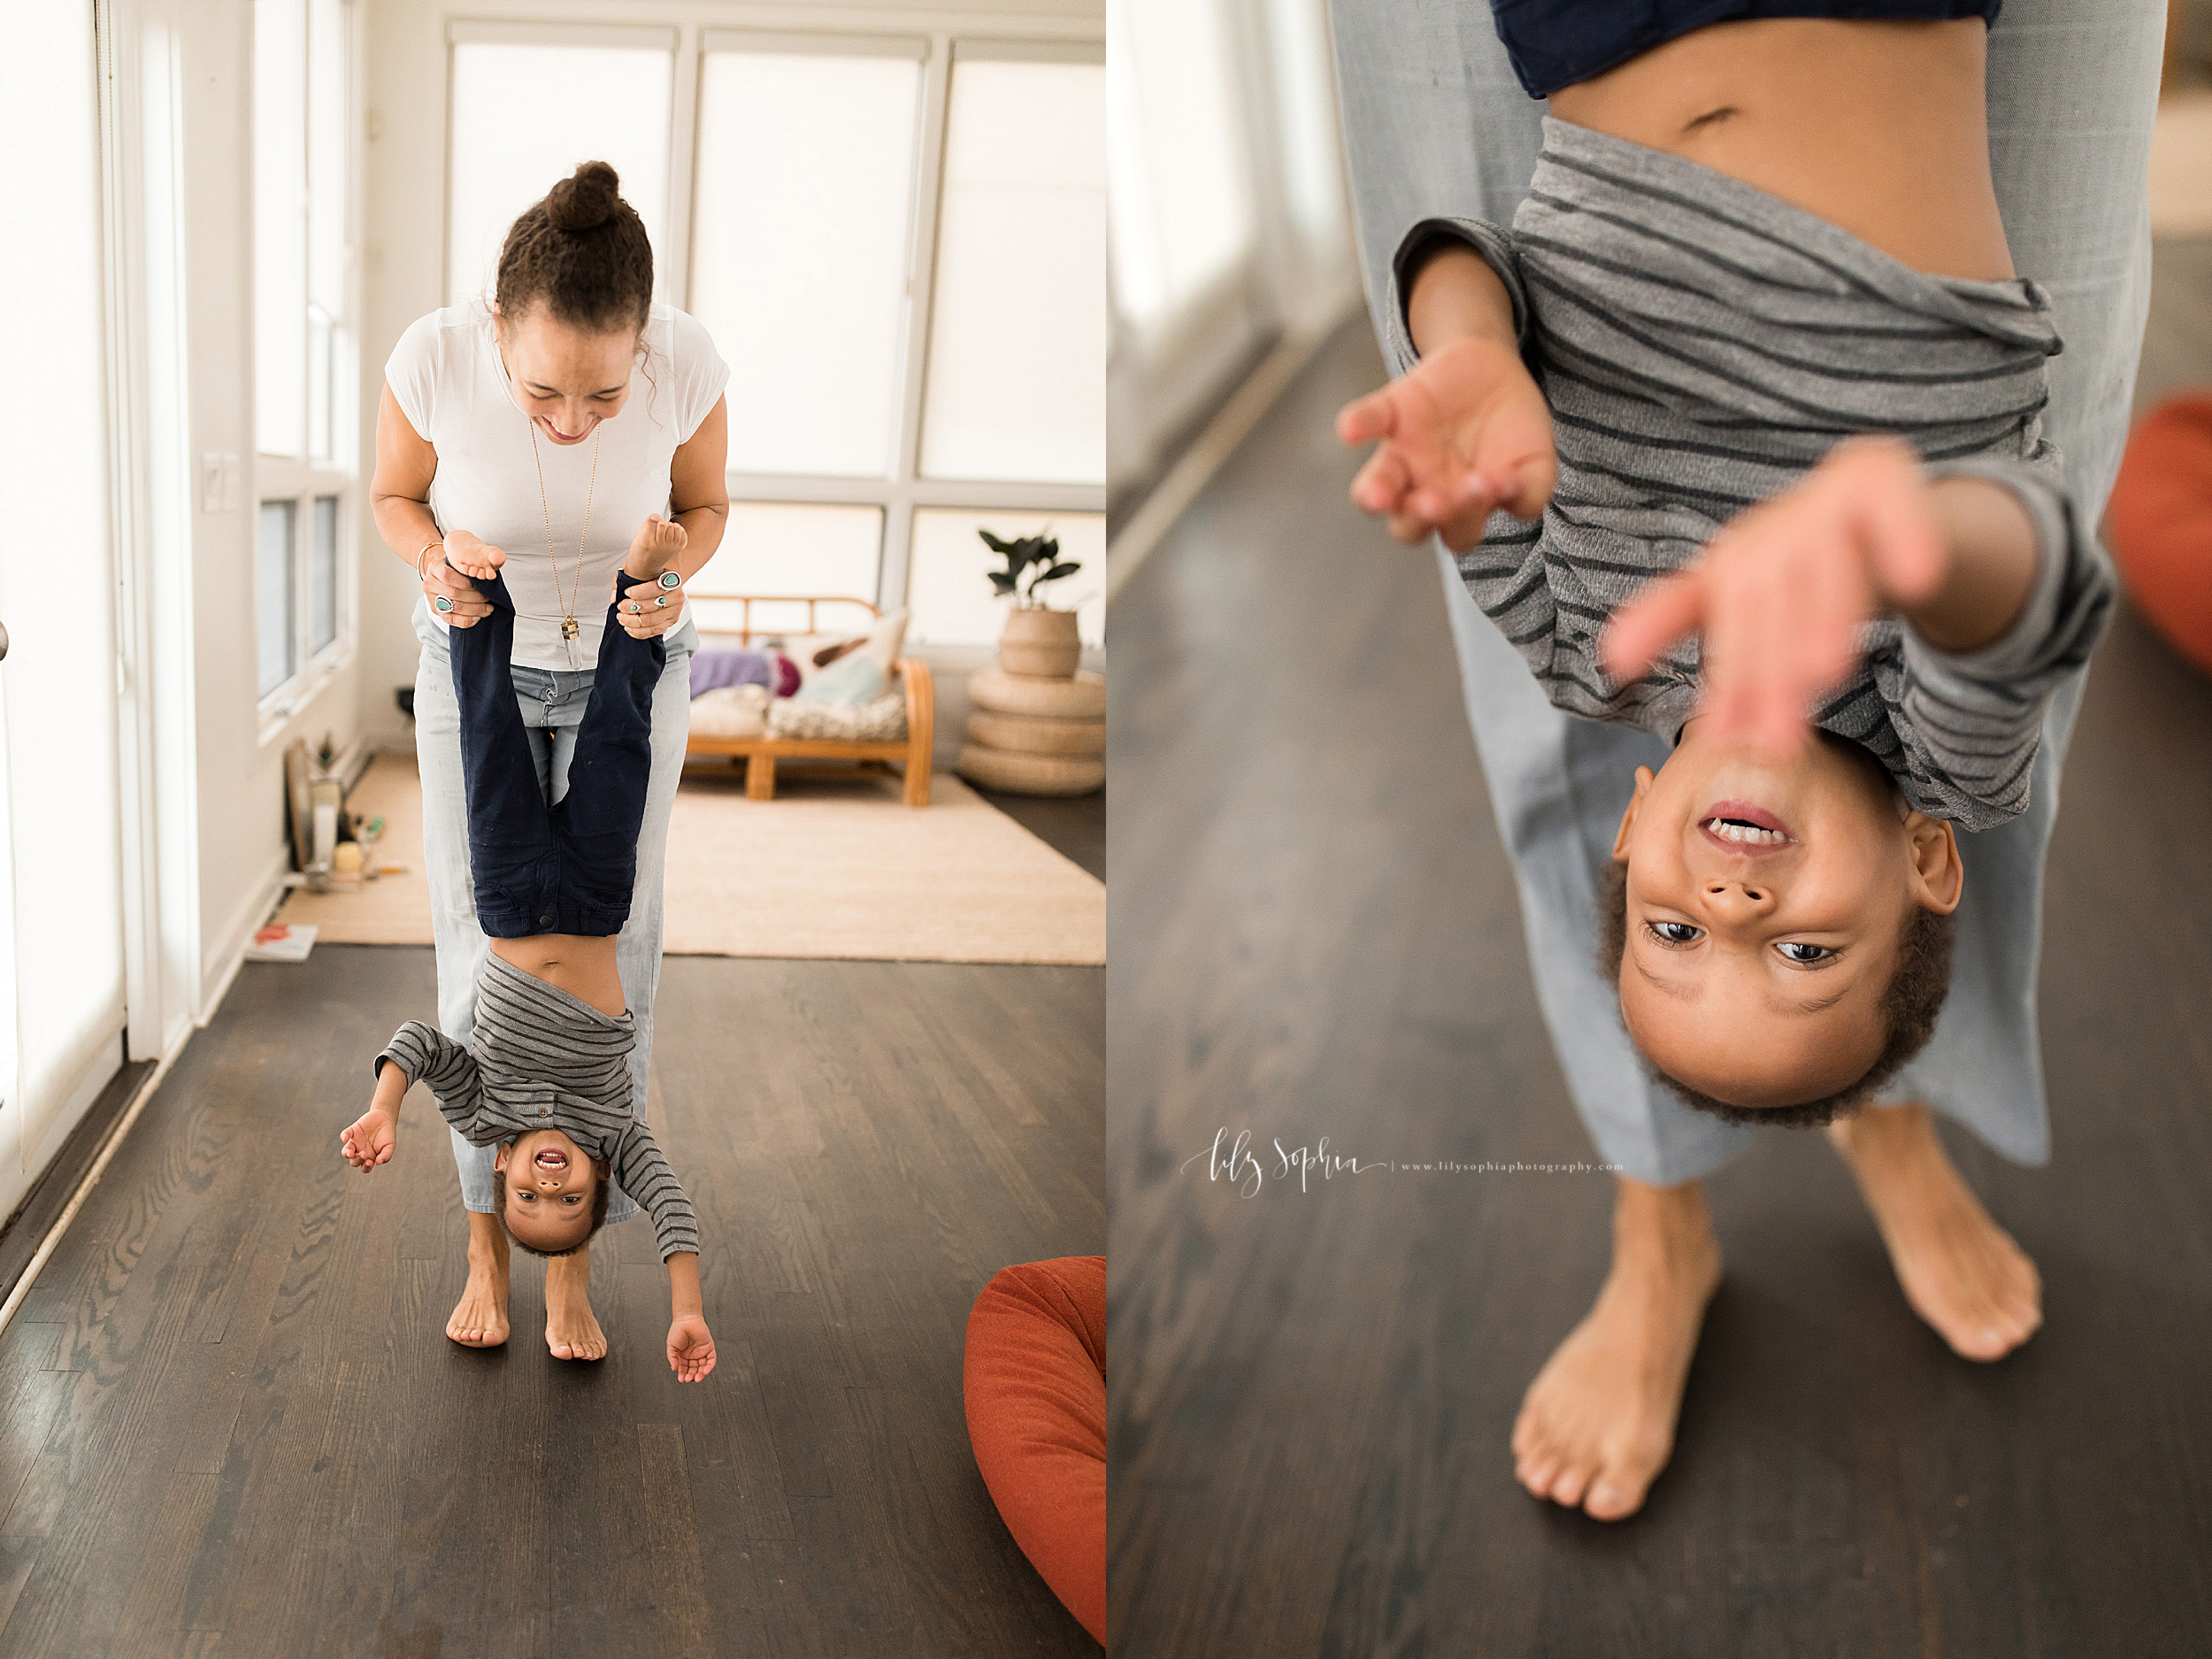 atlanta-midtown-inman-grant-park-beltline-old-fourth-ward-lily-sophia-photography-in-home-lifestyle-mommy-and-me-session-family-photographer-toddler-boy_0434.jpg